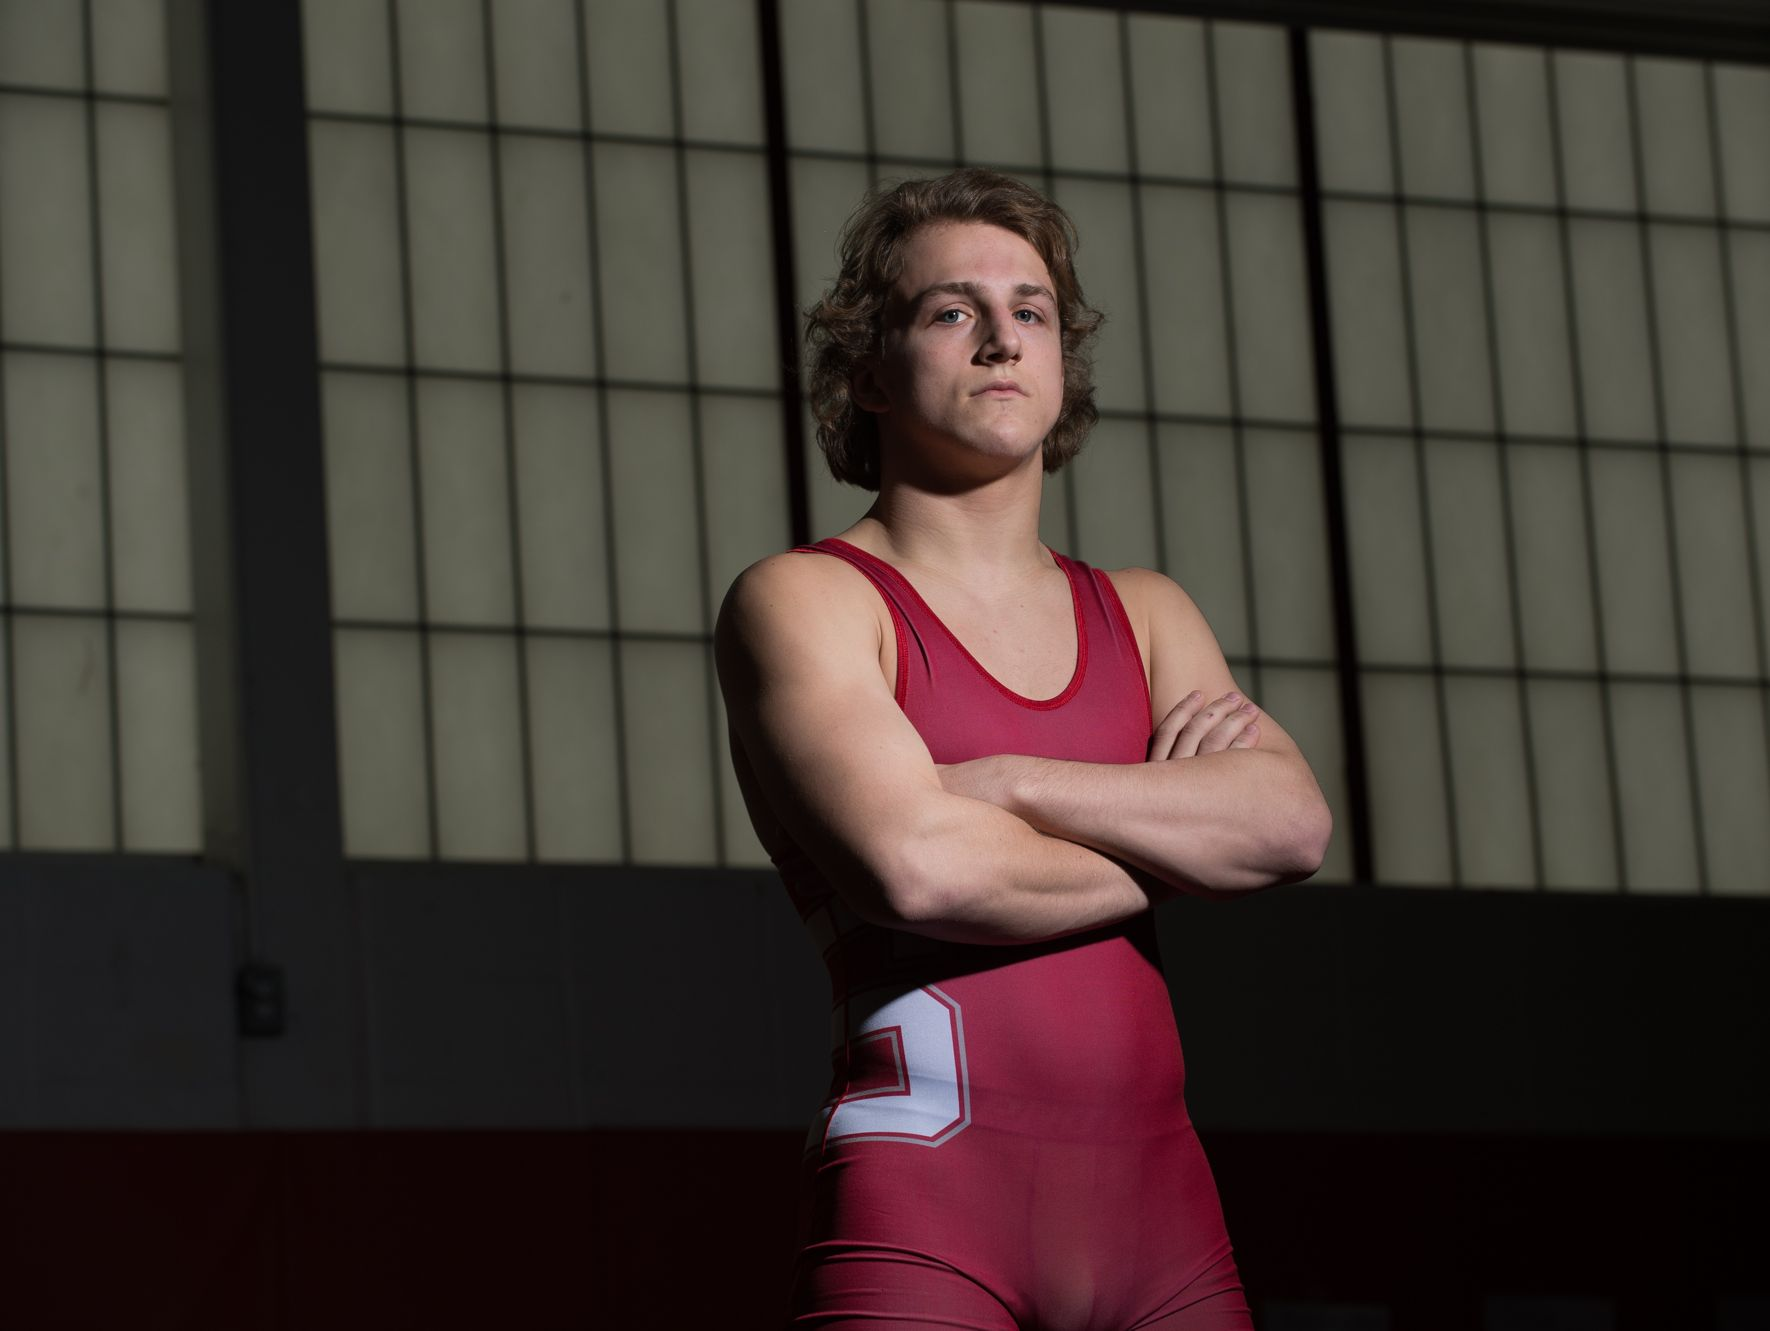 Smyrna junior Tony Wuest has already won three major tournaments this season, and is on track to be one of the top contenders for a DIAA championship at 195 pounds.